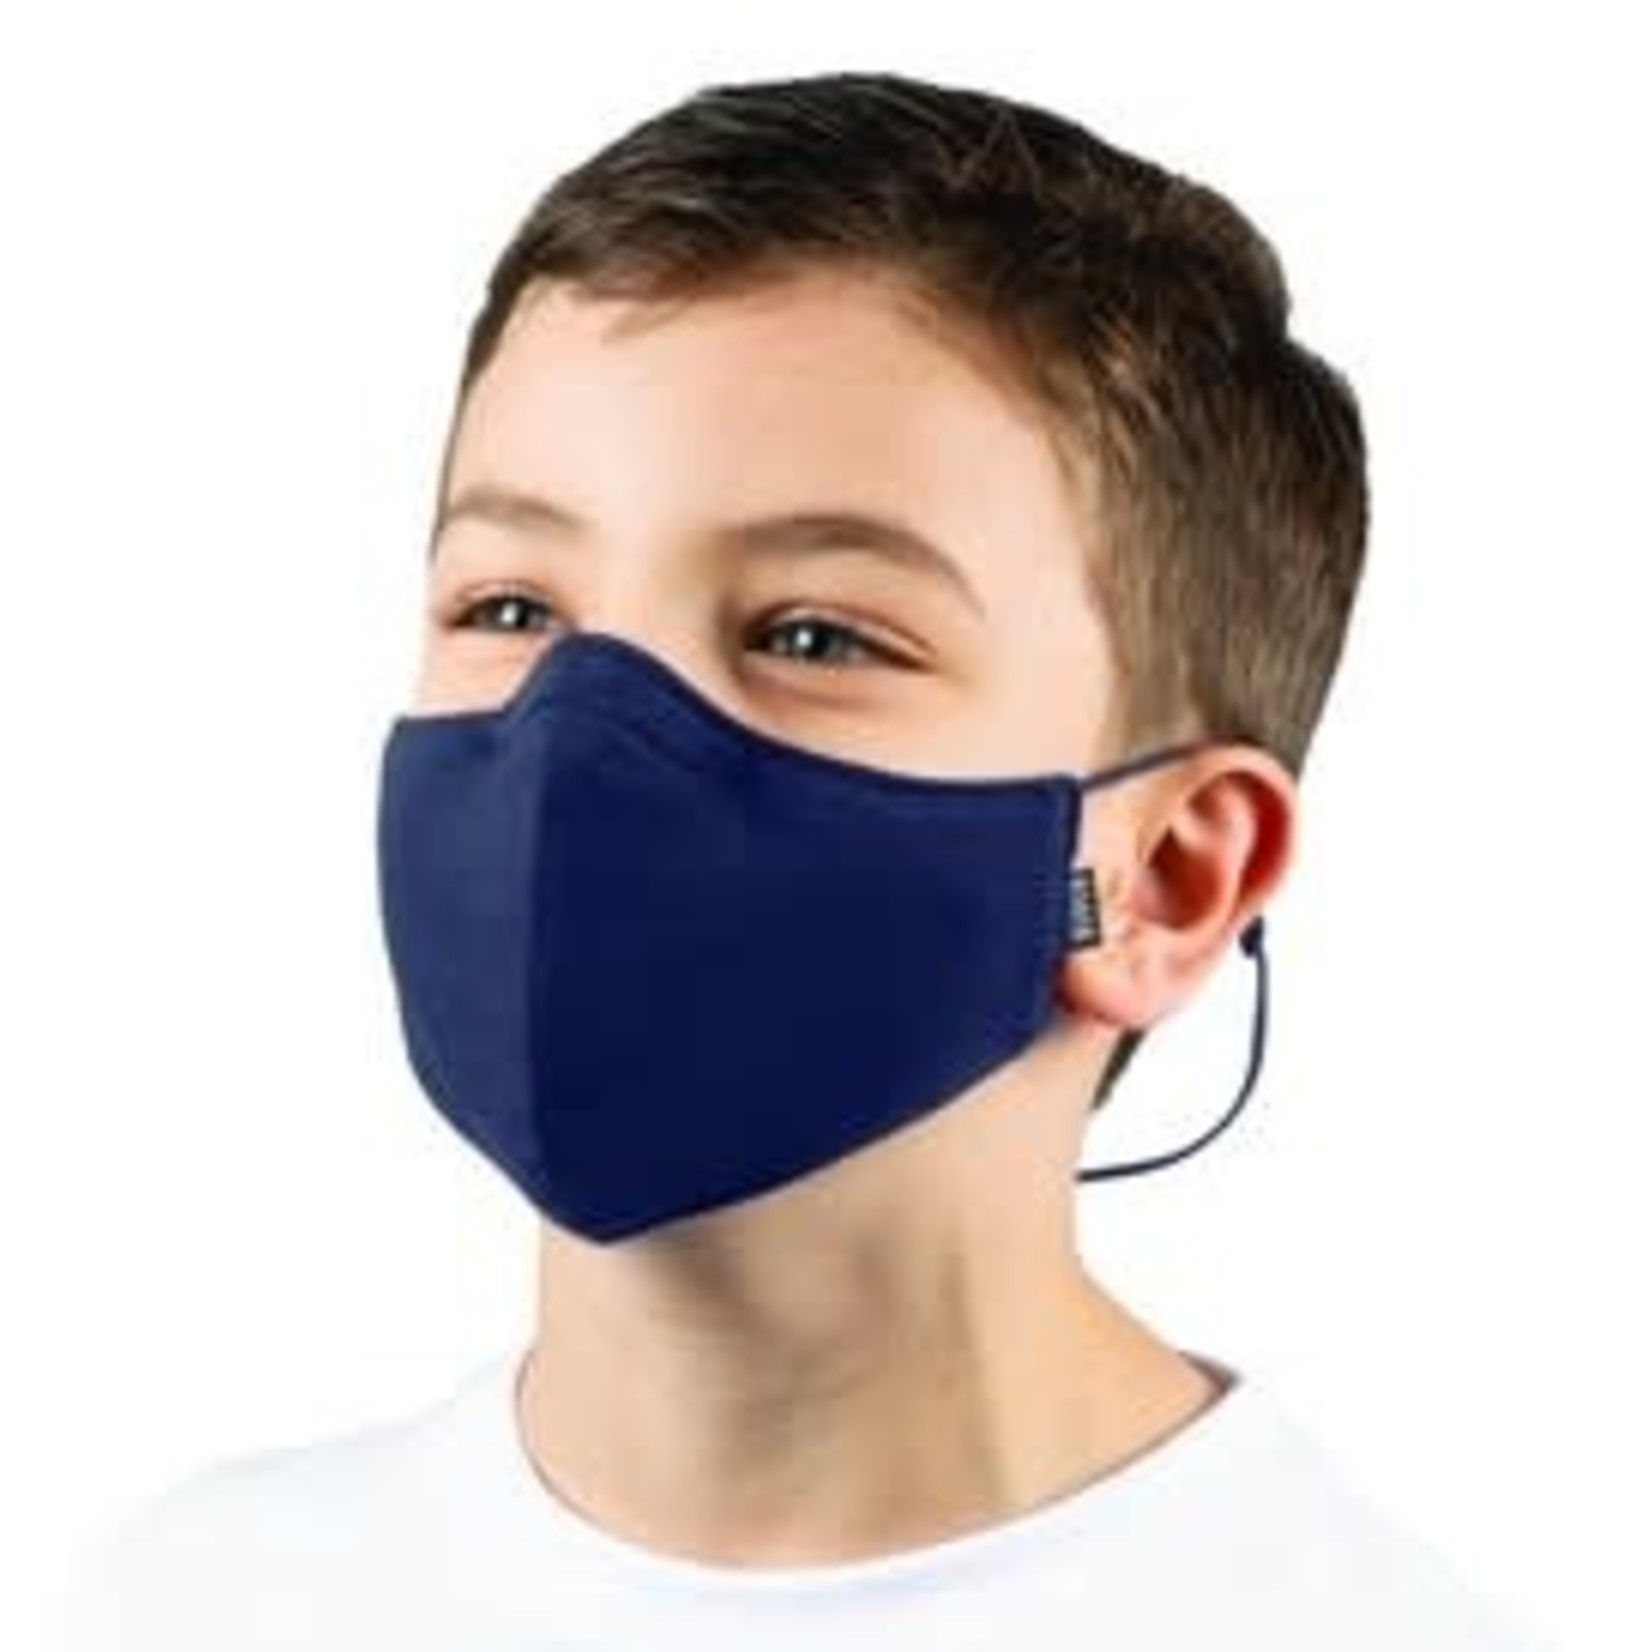 Bloch Bloch A004CP Child Mask w/ Lanyard and Nose Pad - 3 Pack